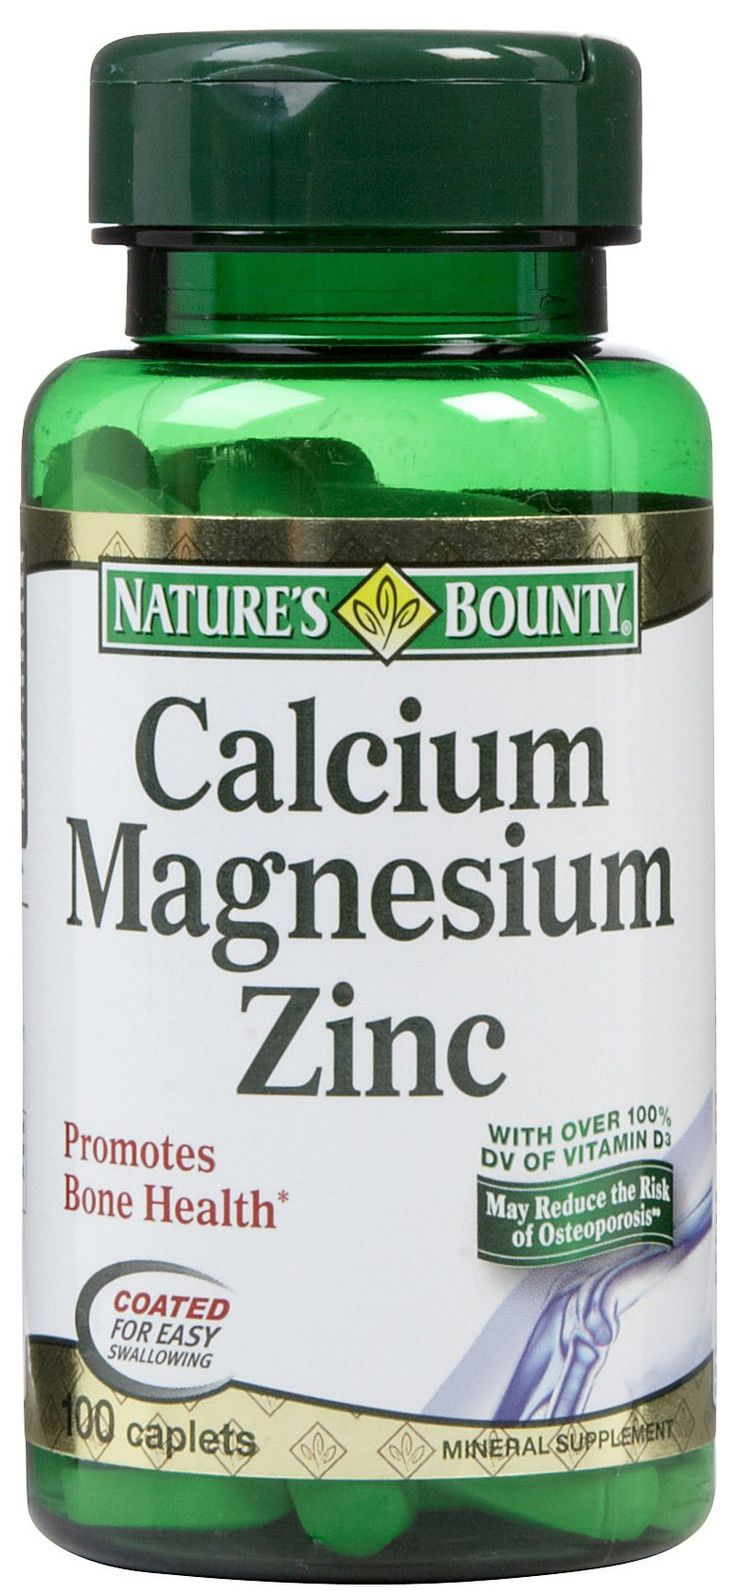 Get Nature's Bounty Vitamins as low as $.19 each! This deal ends Friday, 11/7 at Publix! {Deal Scenario:} Buy: (1) Nature's Bounty Calcium Magnesium Zinc 100 ct – $5.19 Use: (1) $3/1 Nature's Bounty Vitamins or Supplements 30 ct +, exp. 11/7/14 (Publix Purple (H&B) Flyer) Use: (1) $2/1 Nature's Bounty Product, exp. 11/14/14 (SS… Continue Reading …